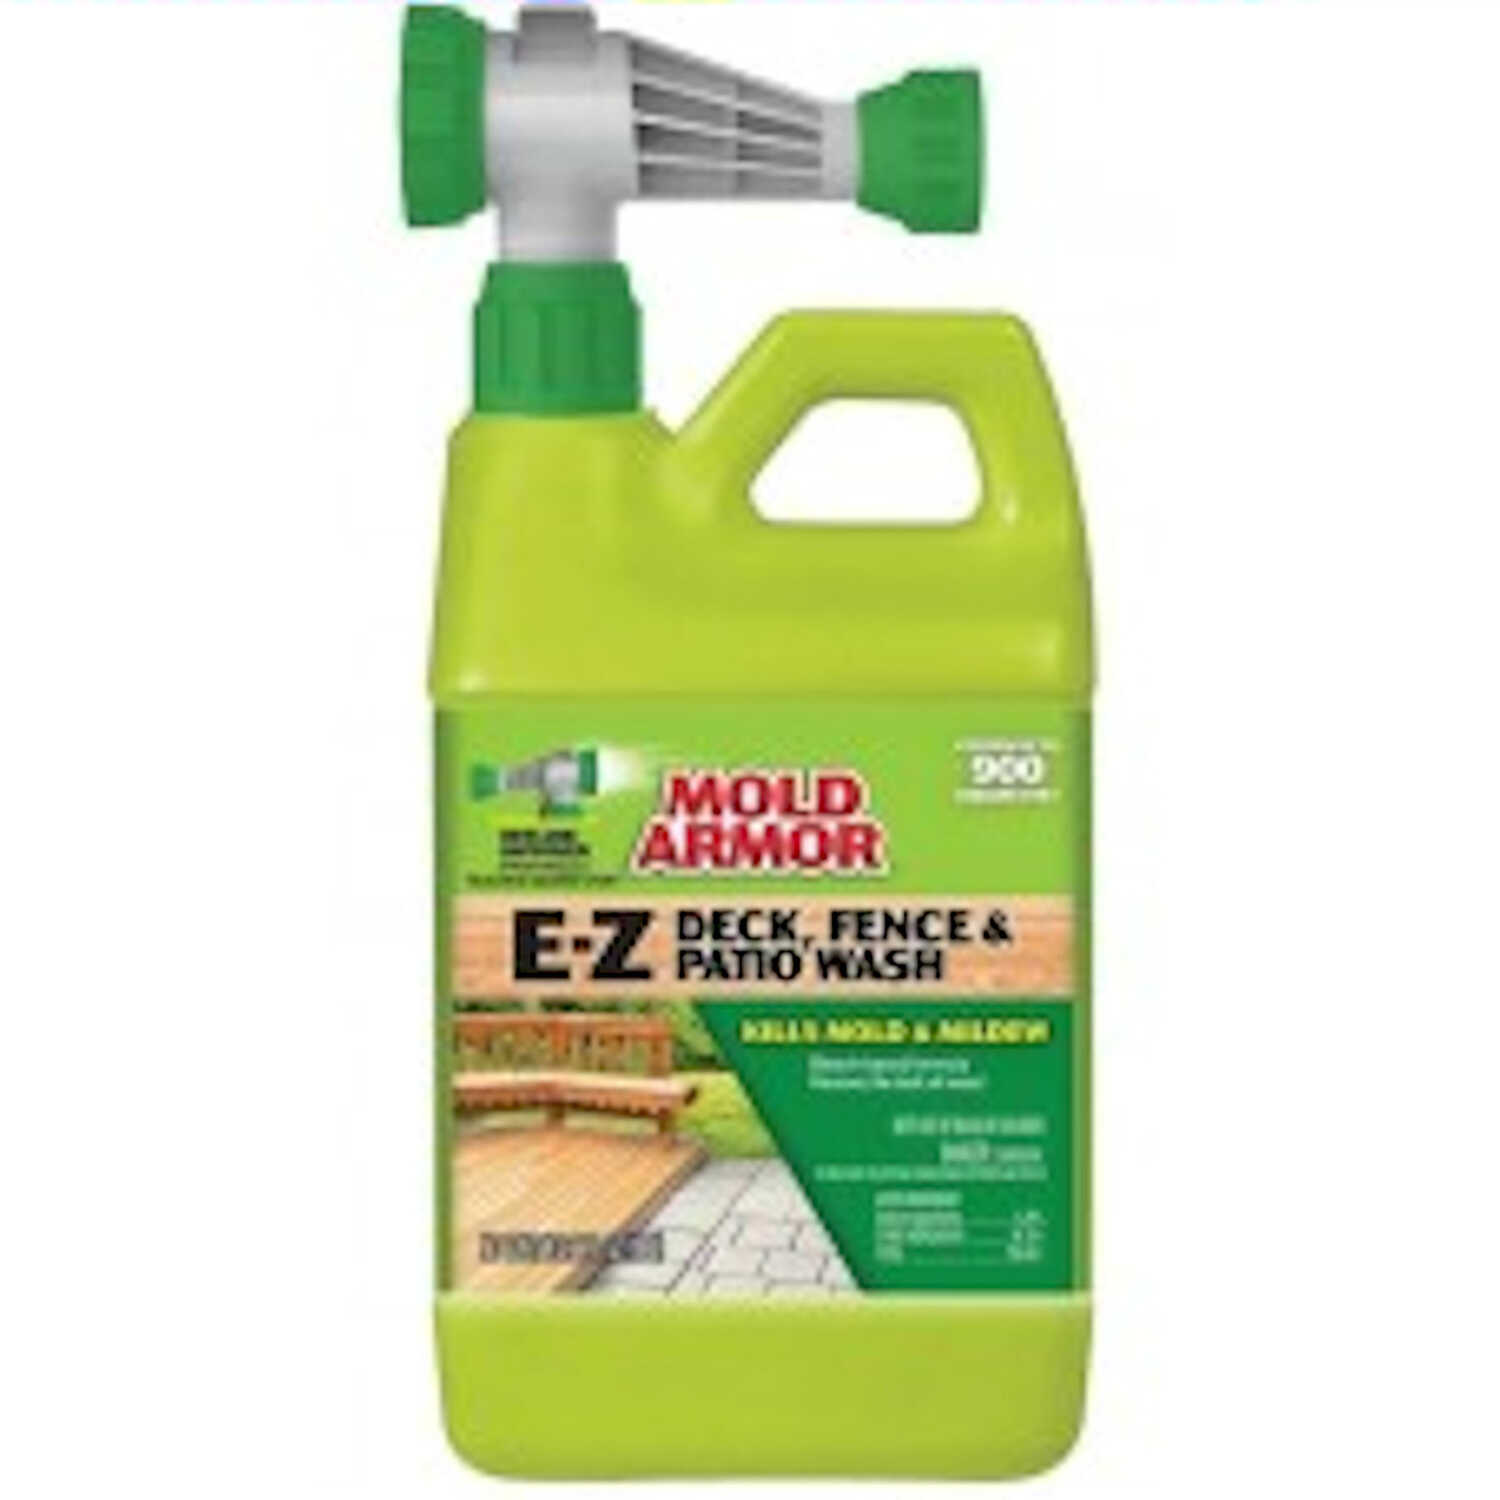 Mold Armor E-Z Deck, Fence and Patio Wash 64 oz  Liquid - Ace Hardware